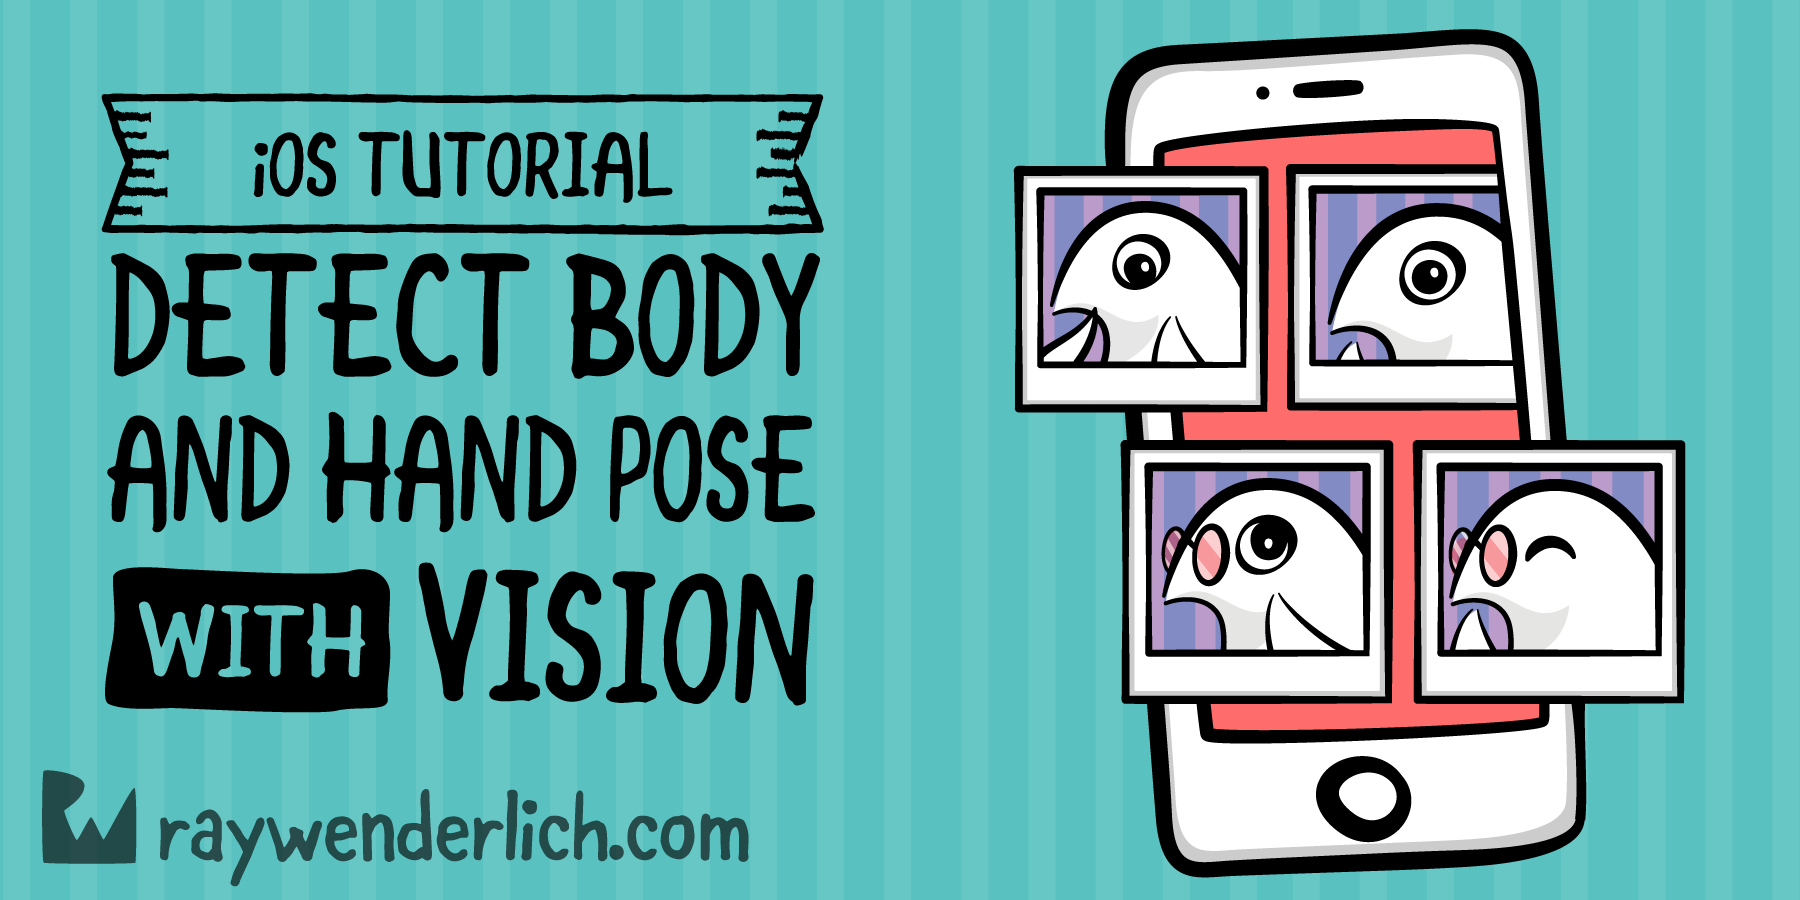 Vision Tutorial for iOS: Detect Body and Hand Pose [FREE]